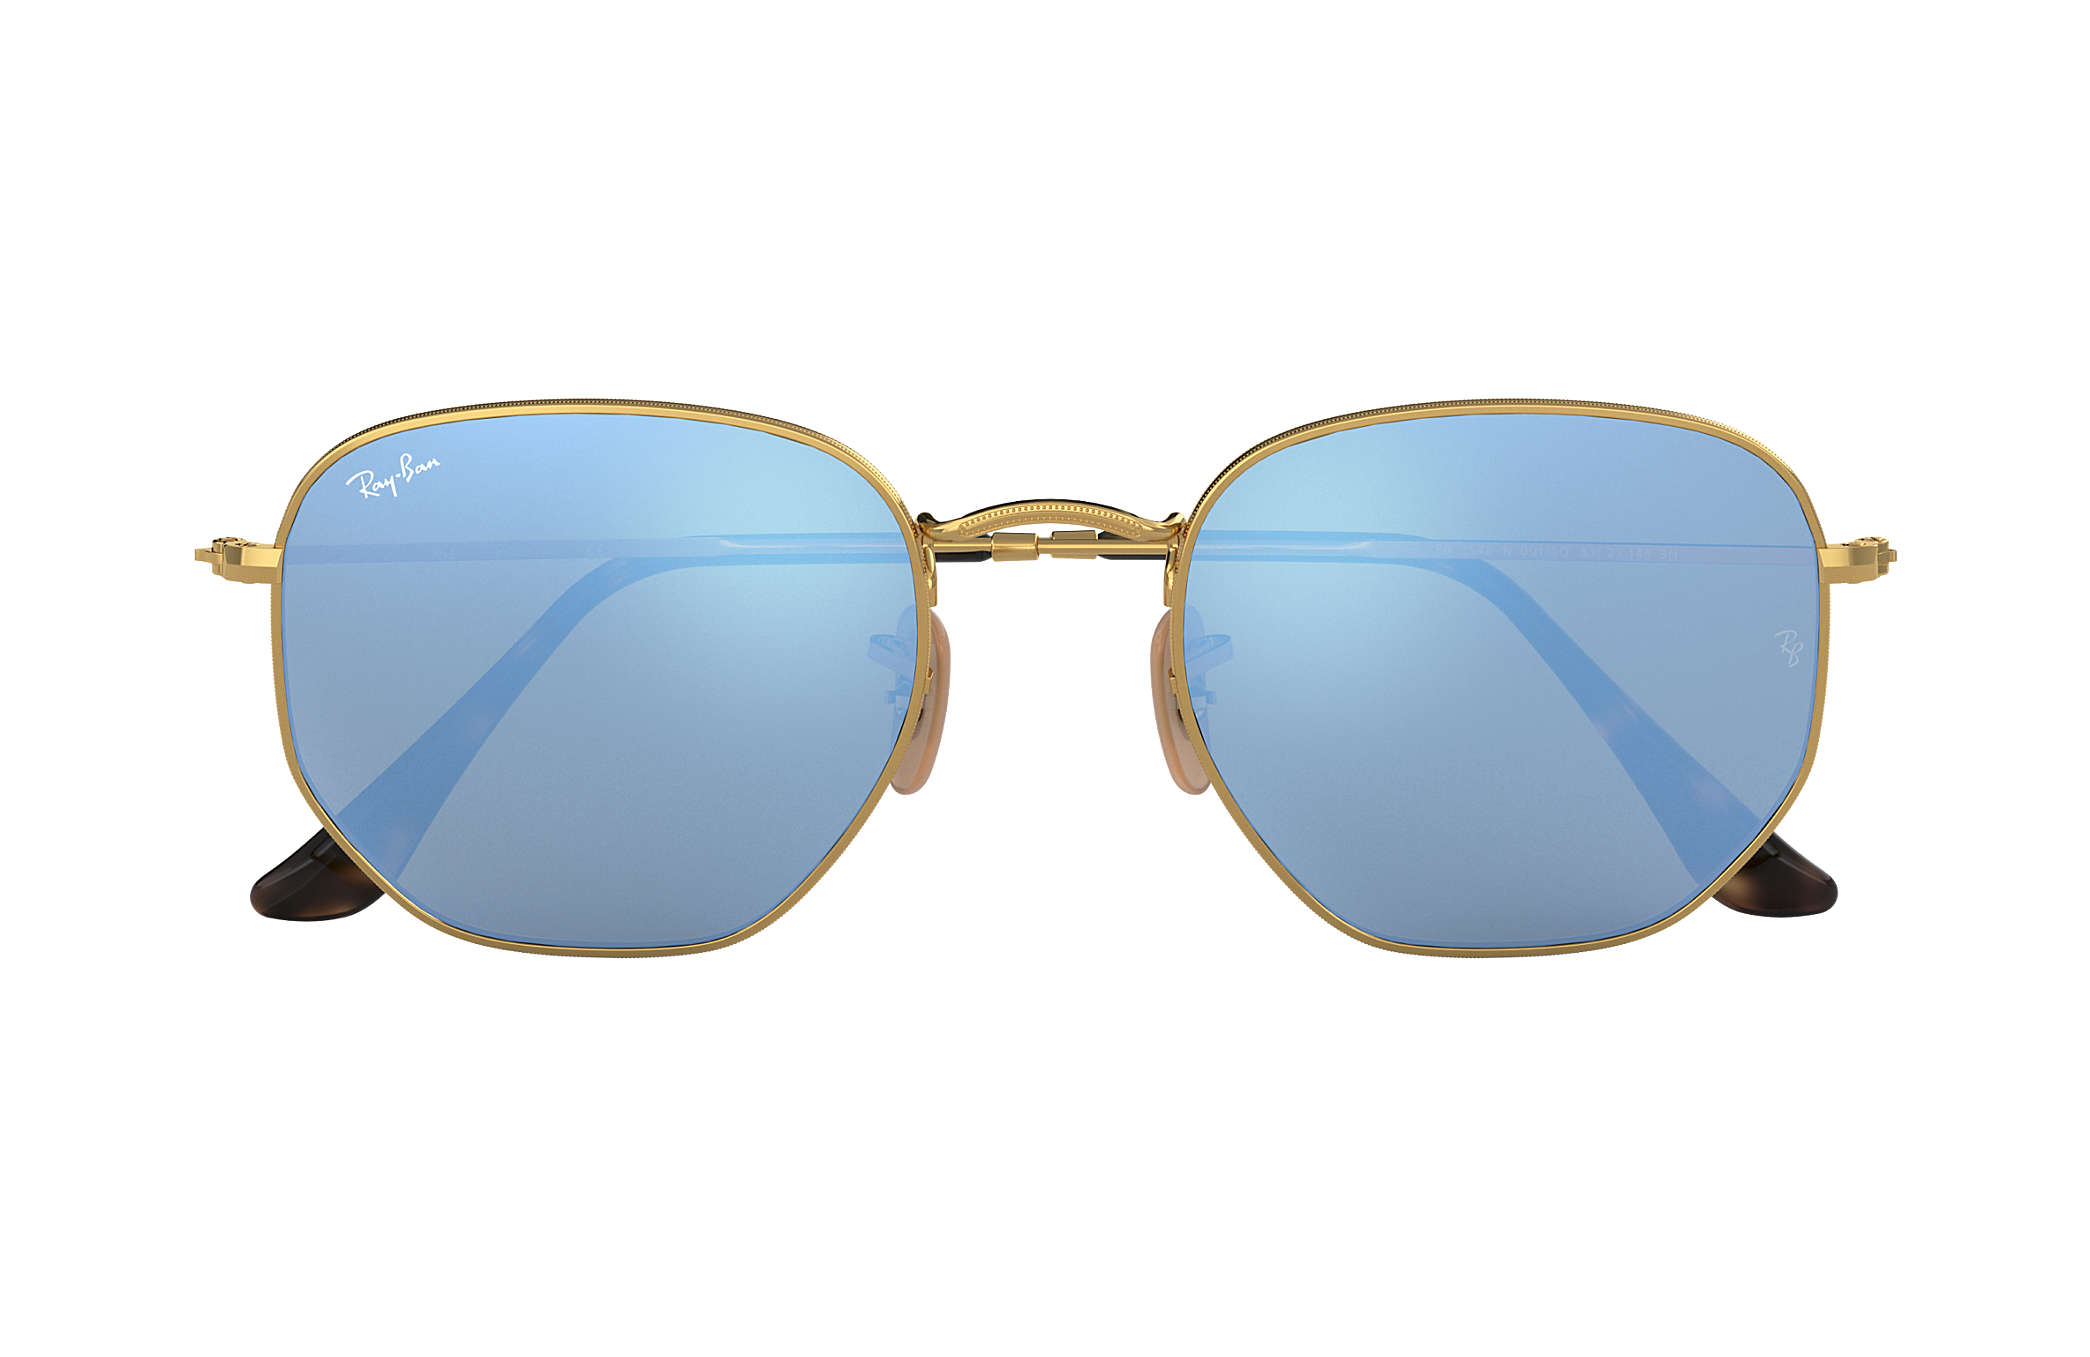 27189a0de0 promo code for ray ban sunglasses lowest price z1 58bc2 1c7f5